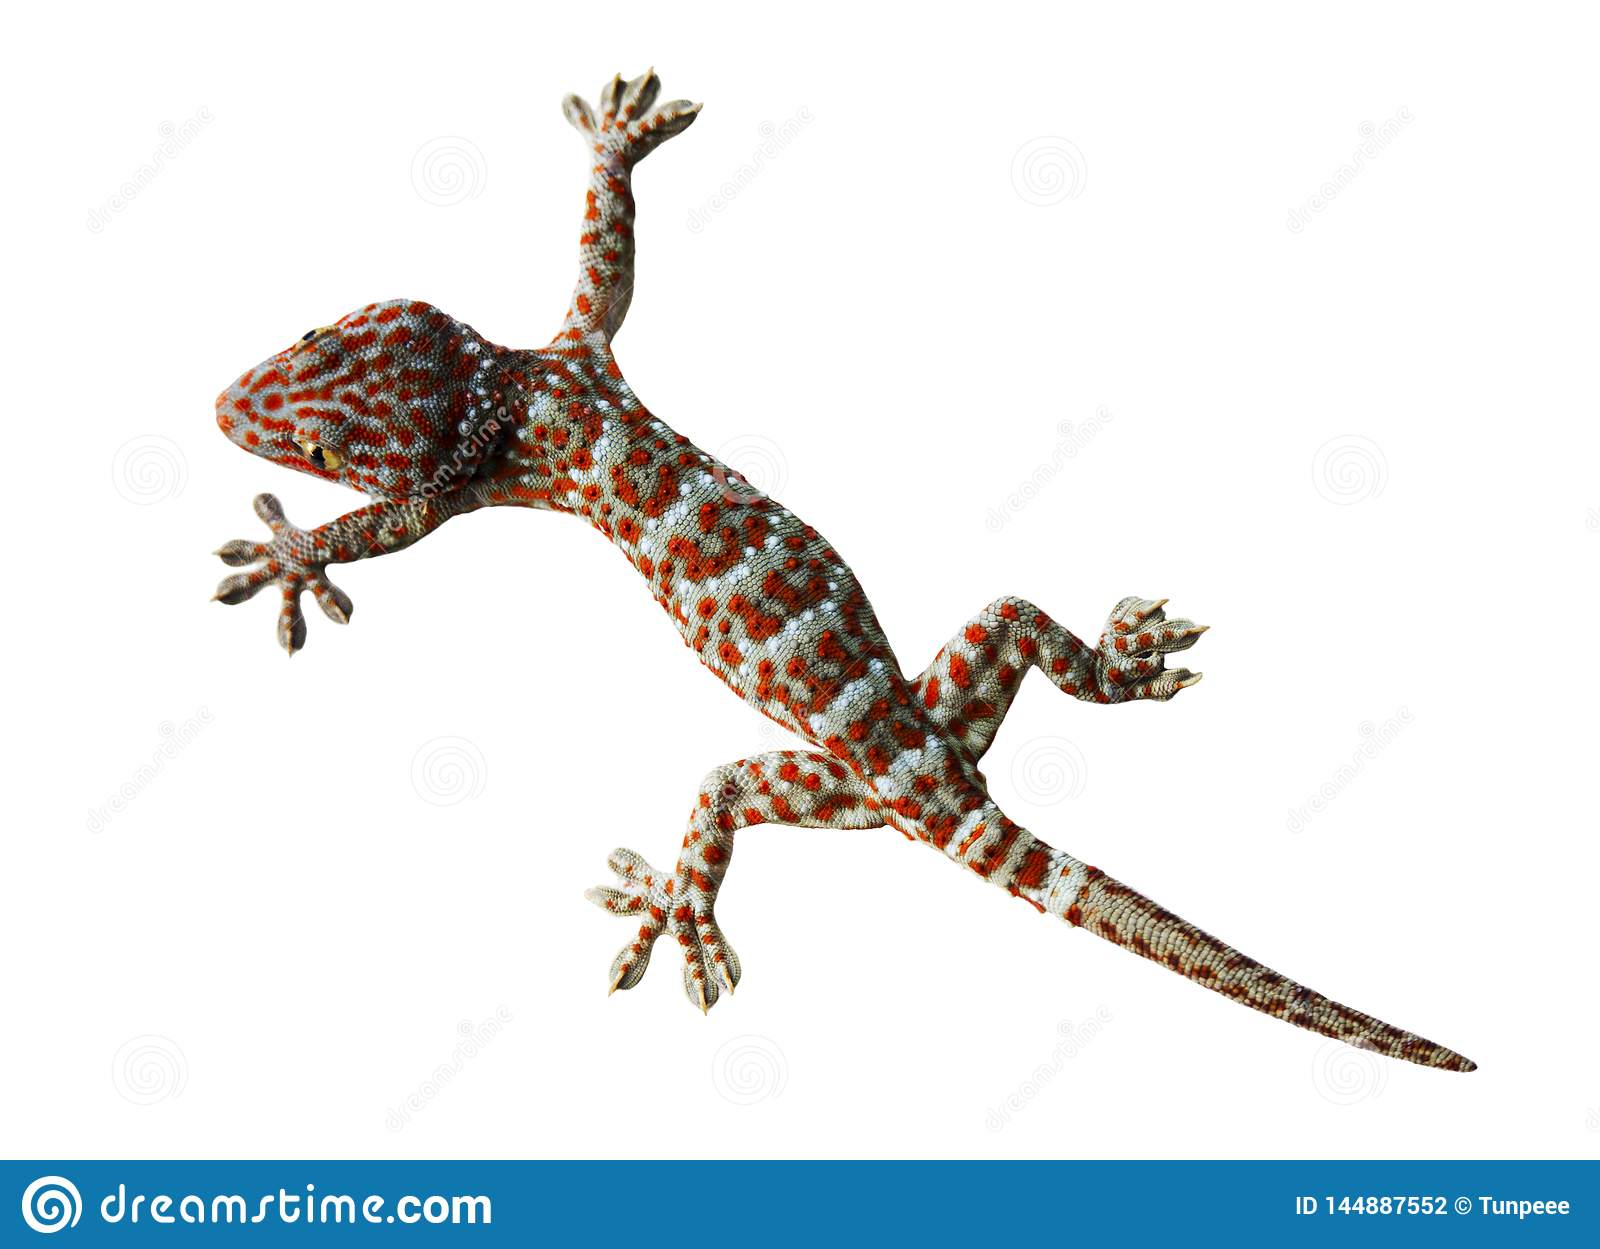 Gecko isolated on a white background